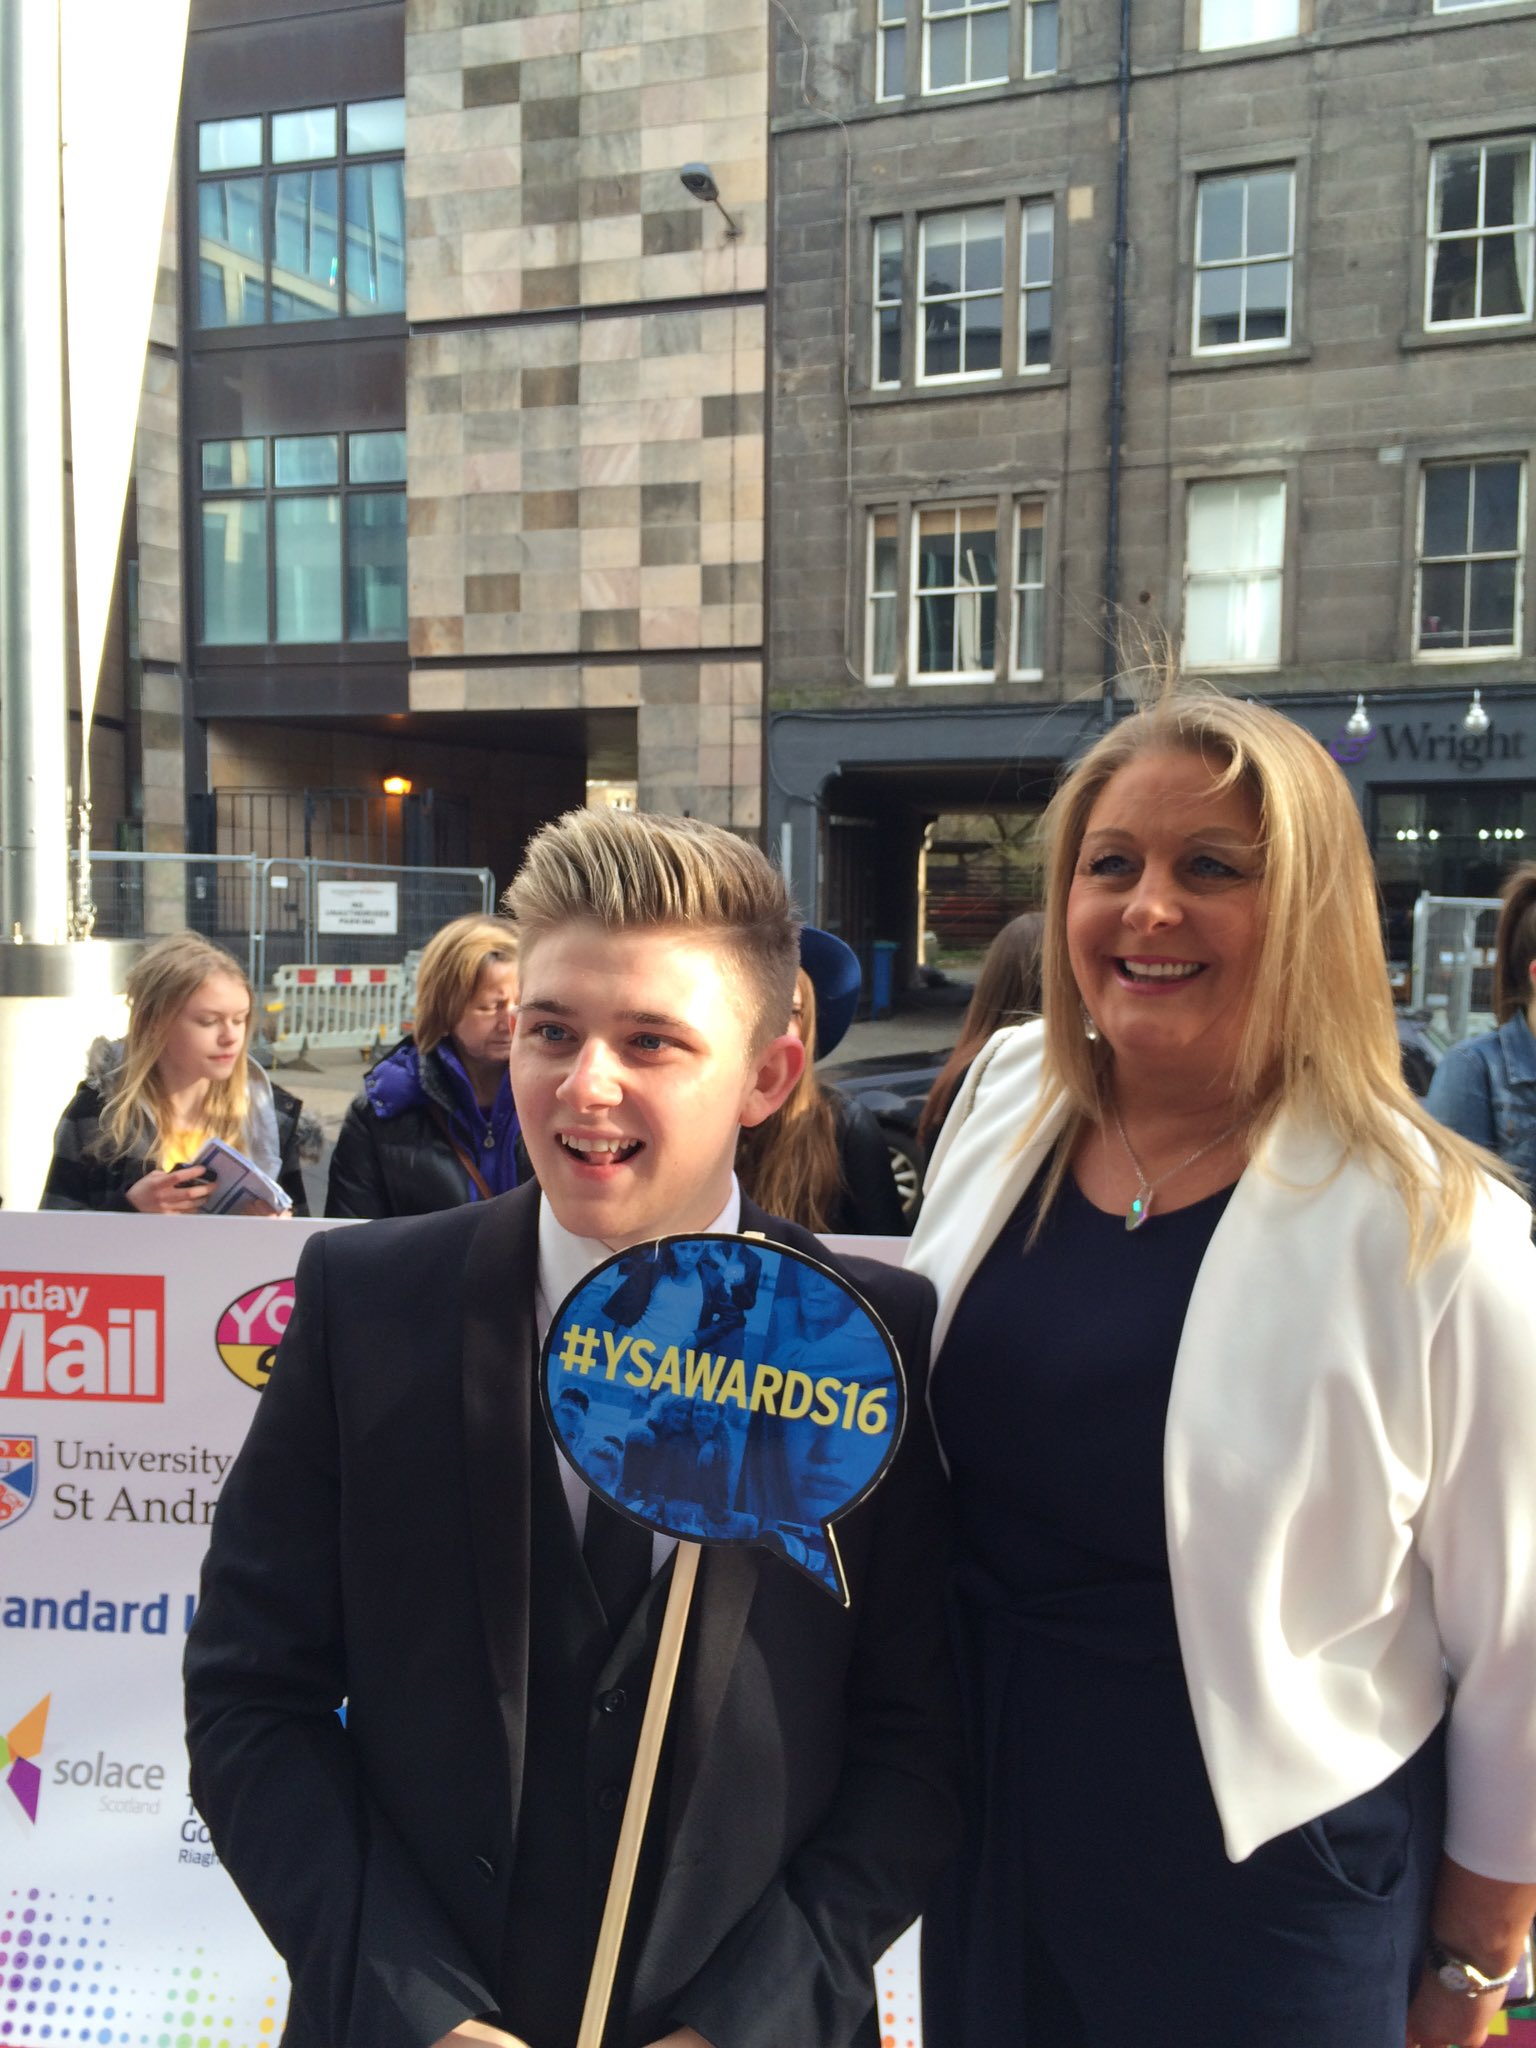 RT @ScotWhatsOn: .@nickymcdonald1 and his Mum have arrived on the red carpet! #YSAwards16 https://t.co/oSClNsv4YU